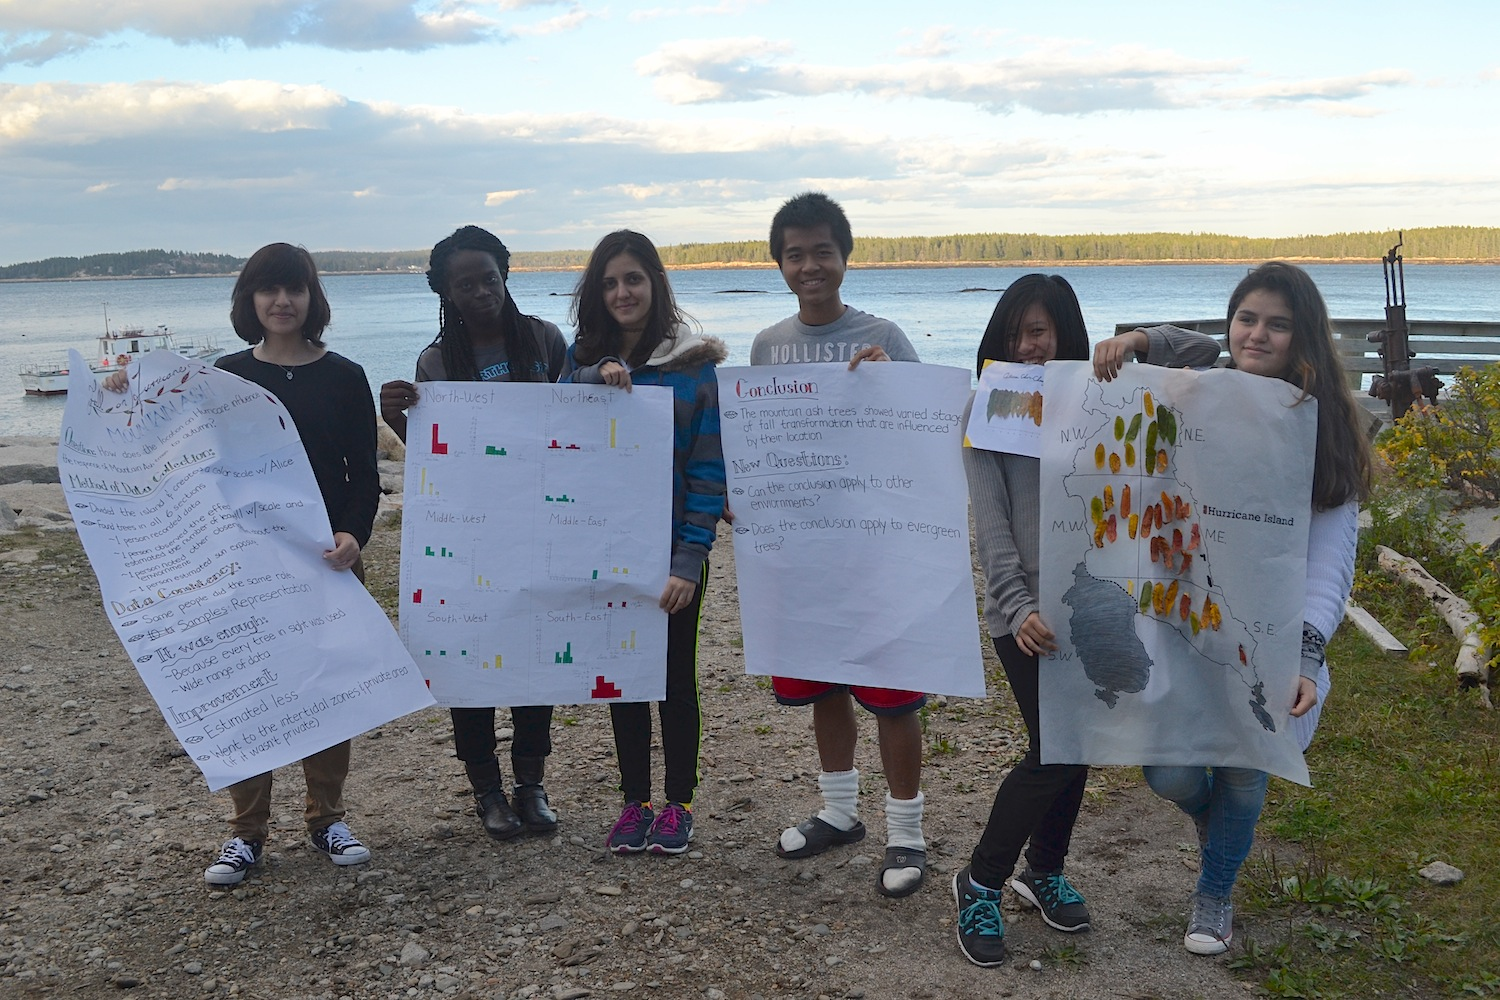 Group 4 shows their results, and a map depicting where they sampled around the island and how that related to different autumnal stages.